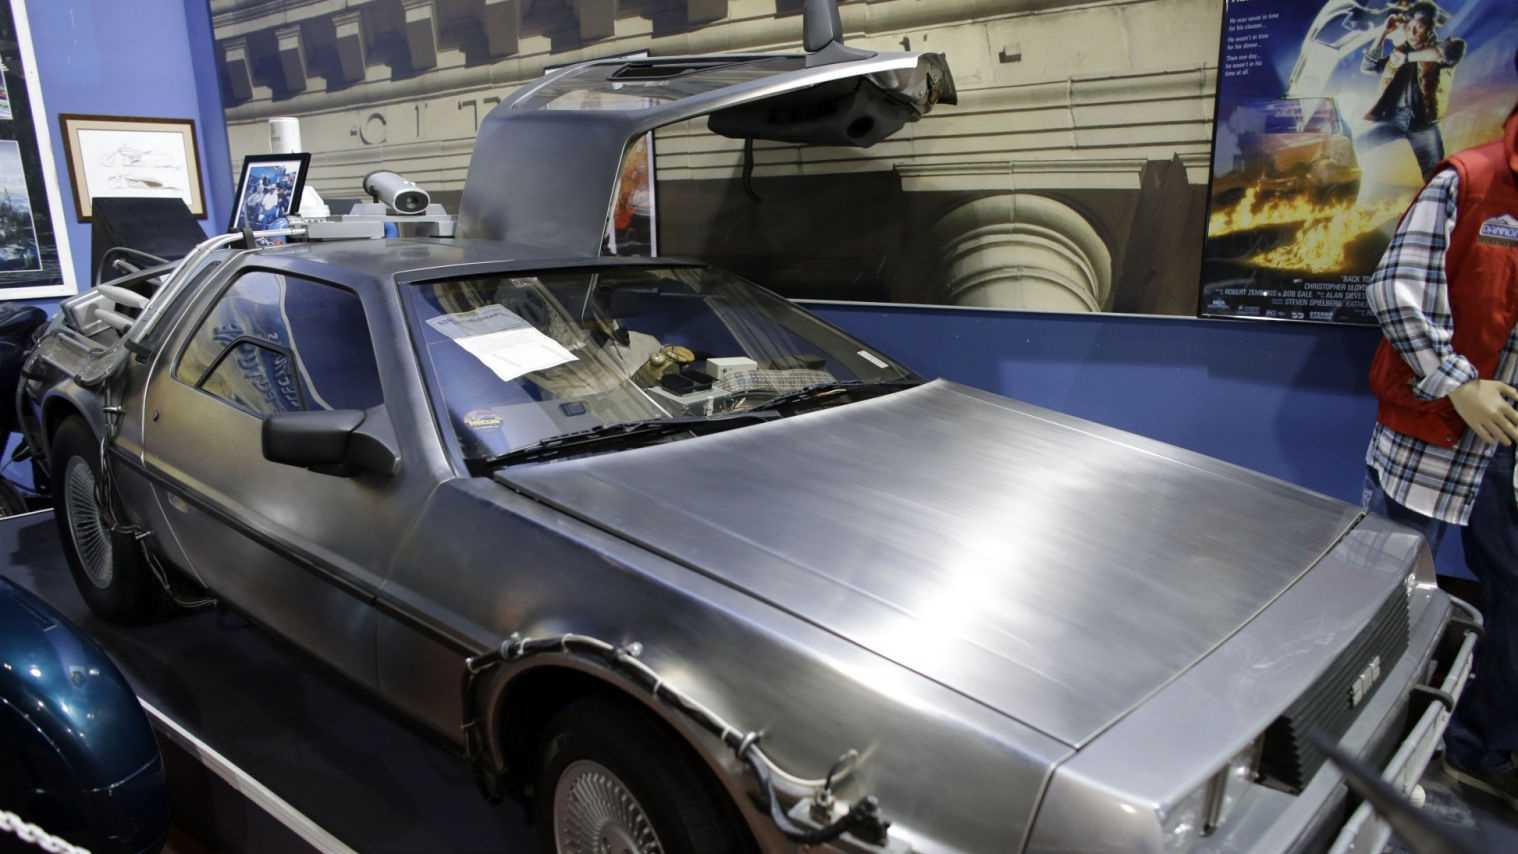 "This Tuesday, Dec. 24, 2013 photo shows the 1982 Delorean ""Time Machine"" from the movie ""Back to the Future"" displayed at the Dezer Collection Museum in North Miami, Fla. More than 1,000 cars are on display at the 250,000-square-foot museum which features American Classics, military and electric cars, bicycles, and cars featured in movies."